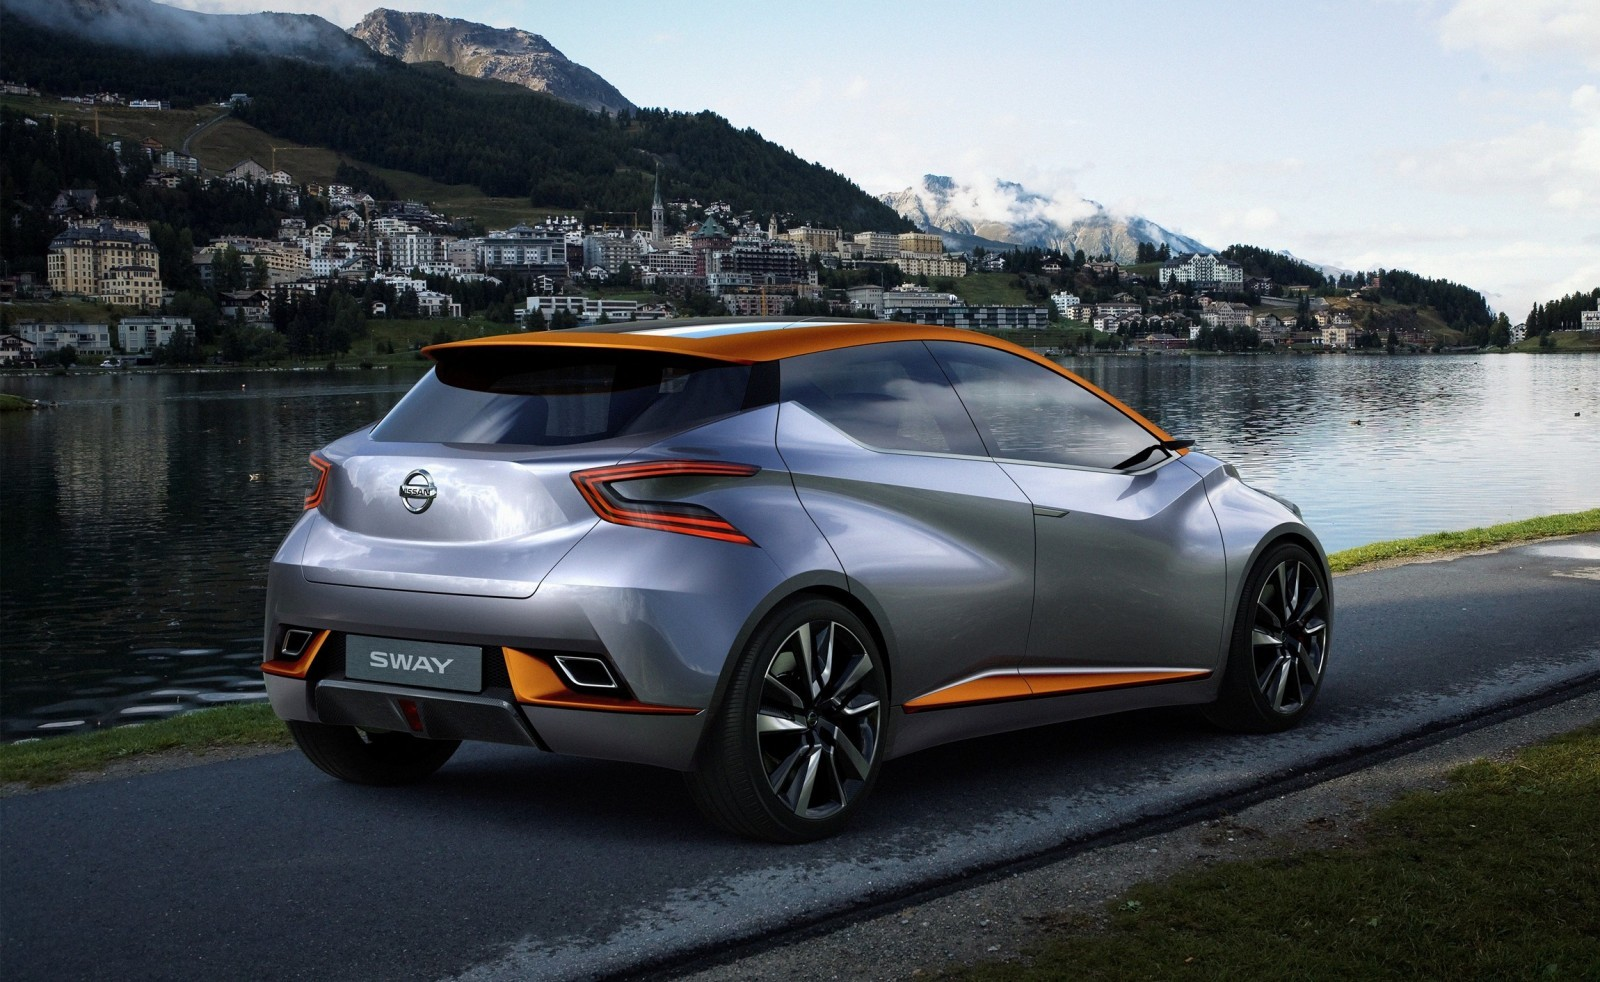 2015 Nissan SWAY Concept 9